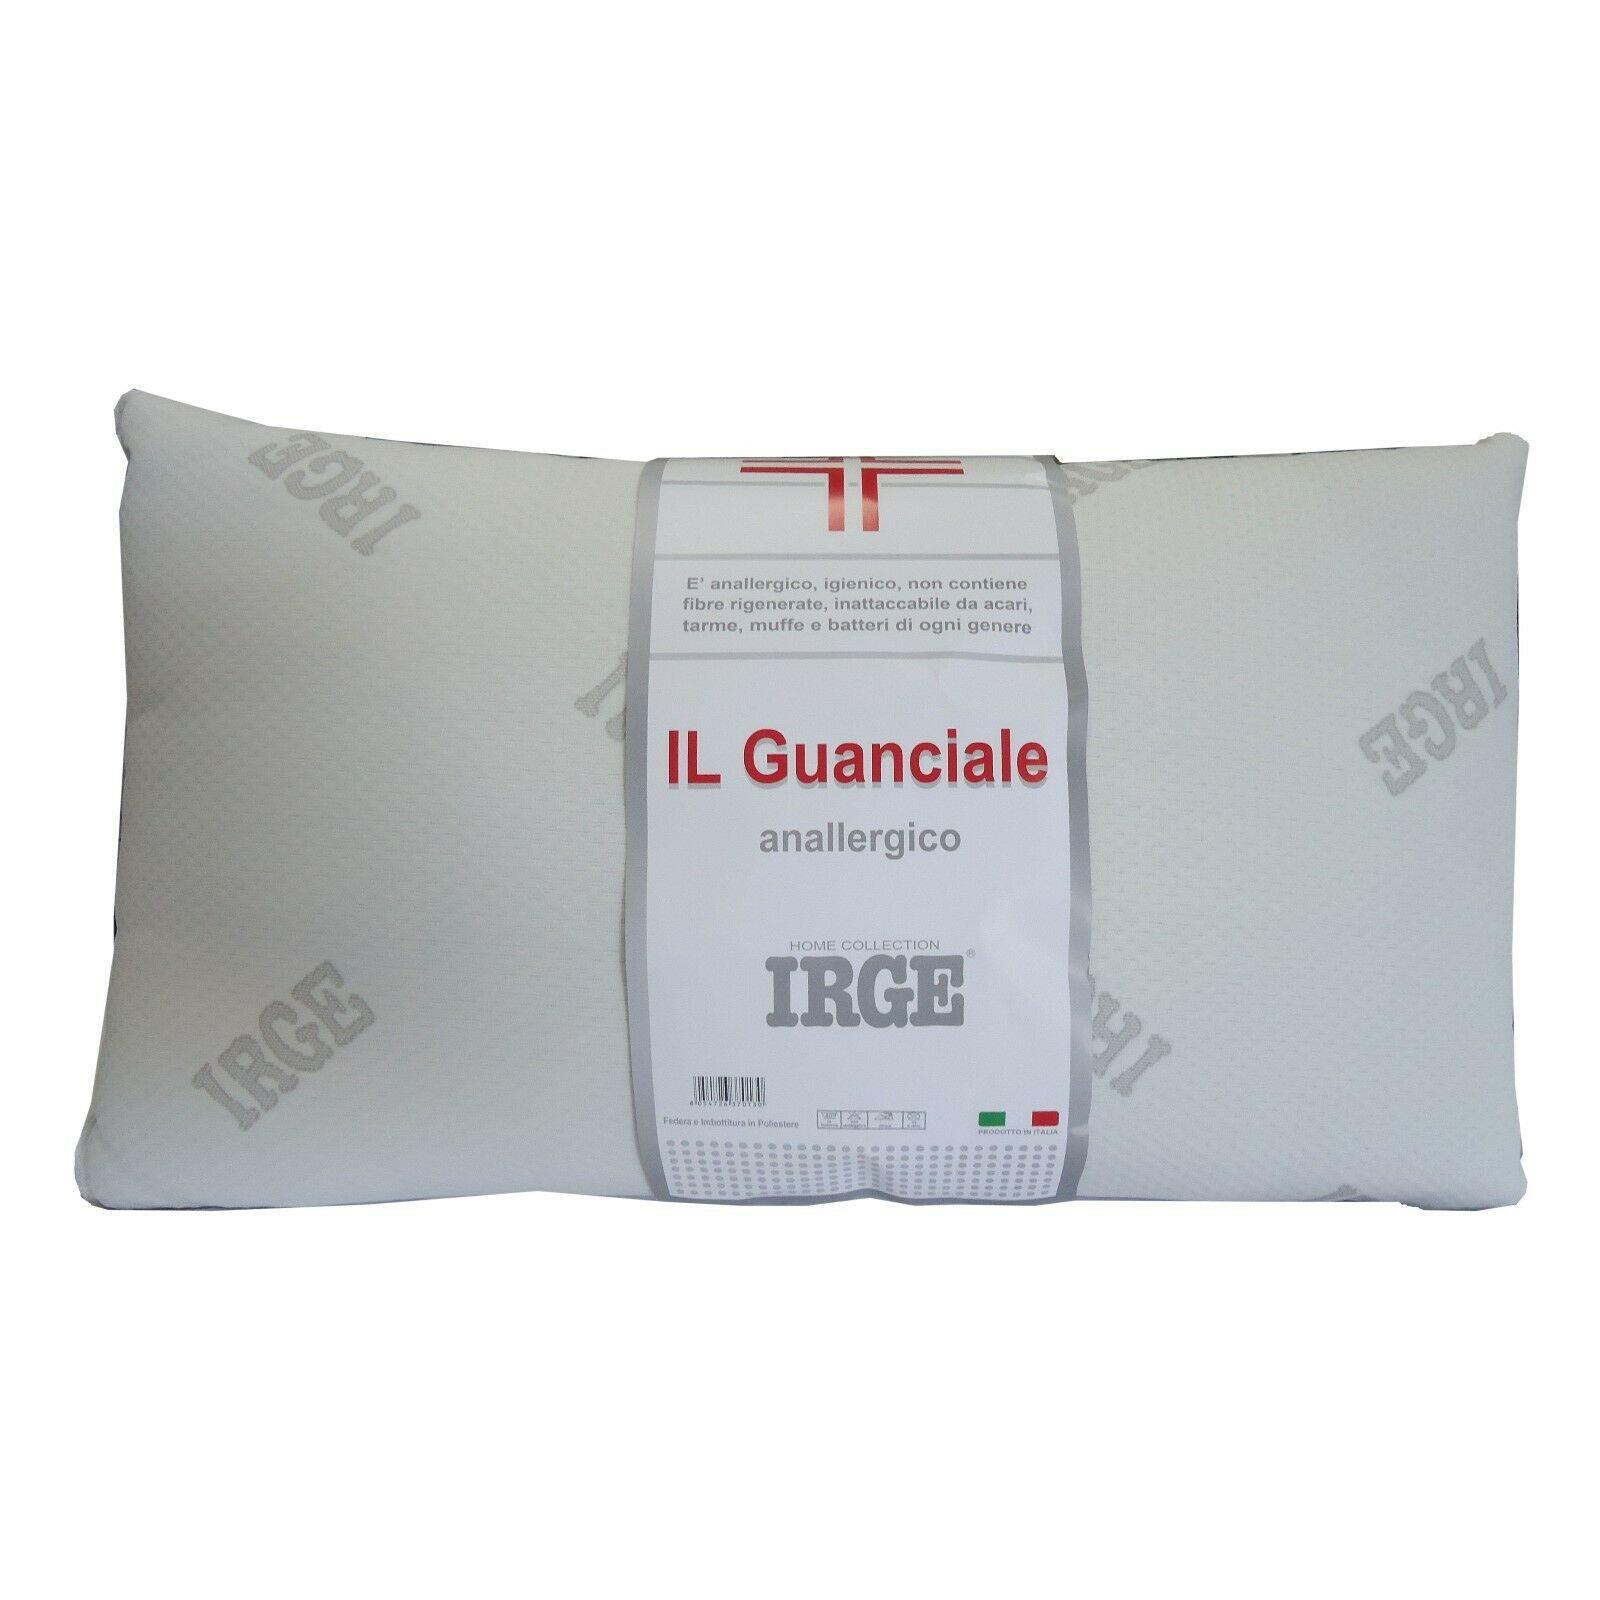 Cuscini Irge.Cuscino Guanciale Irge Anallergico Igienico Made In Italy 50x80